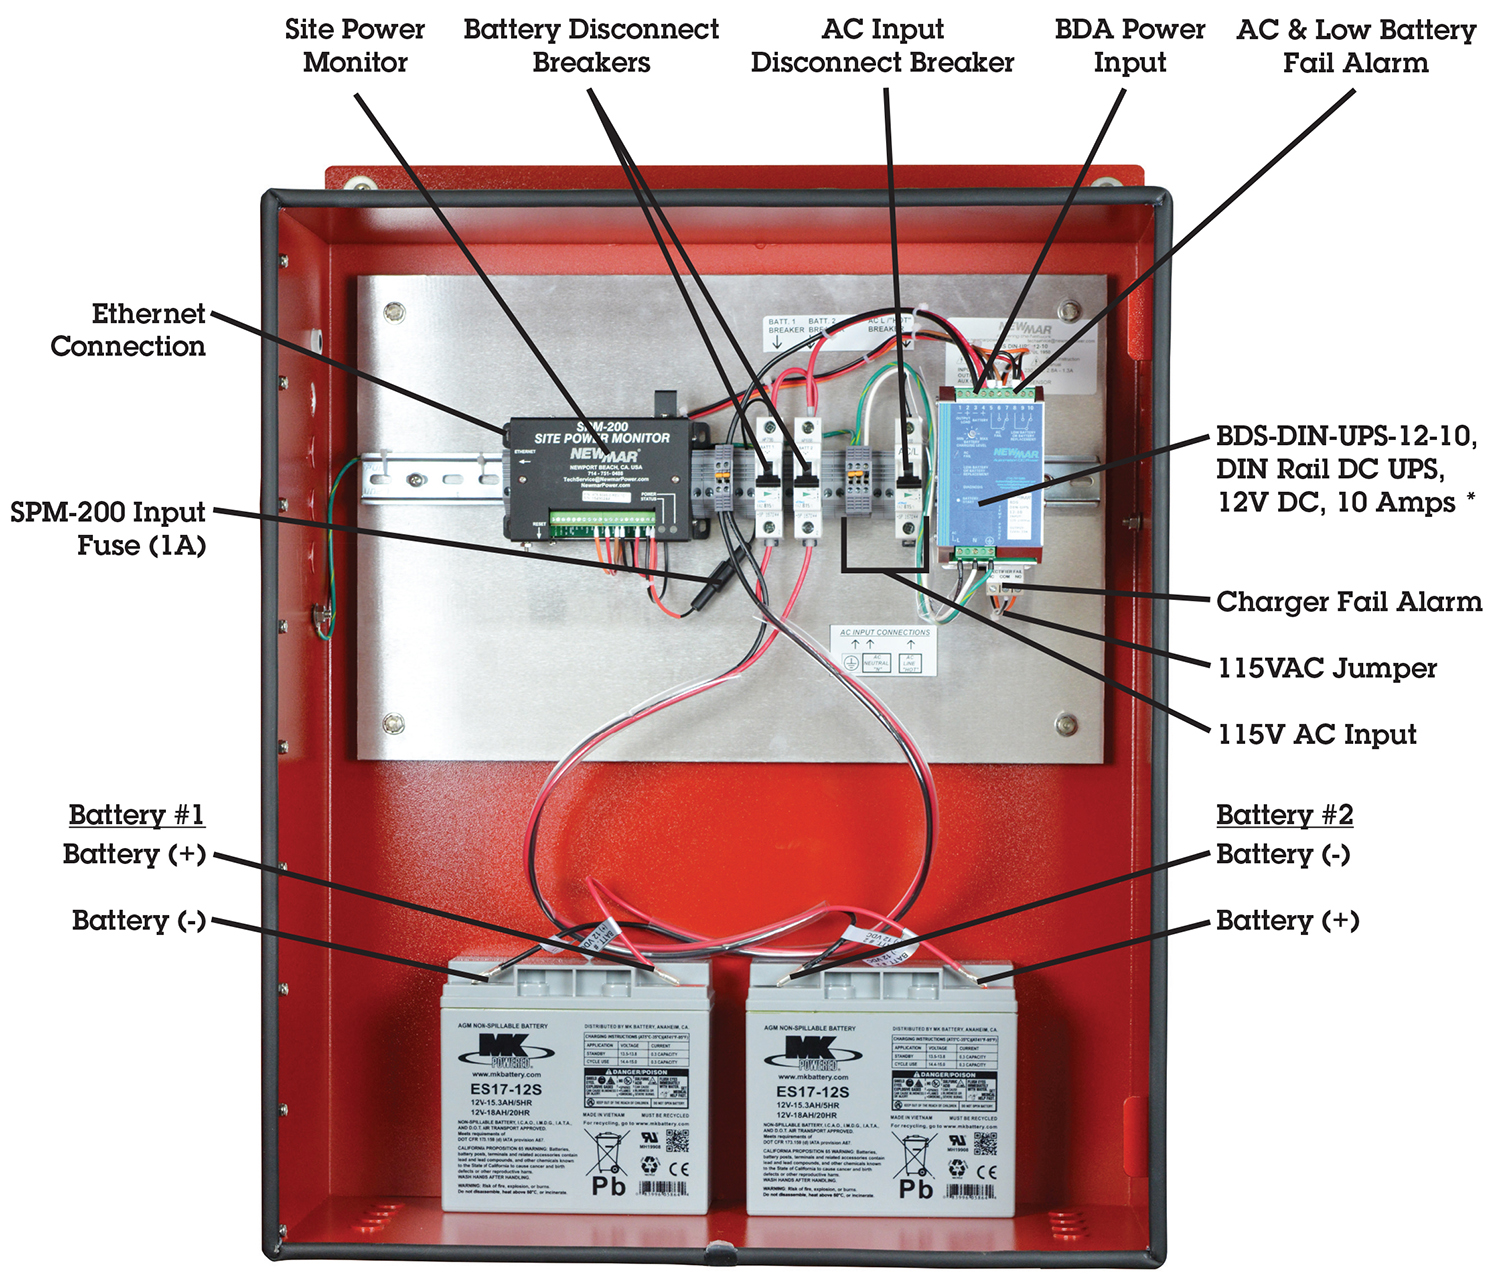 hight resolution of public safety das power pe series enclosures nfpa 1221 in building standards 12 vdc 12